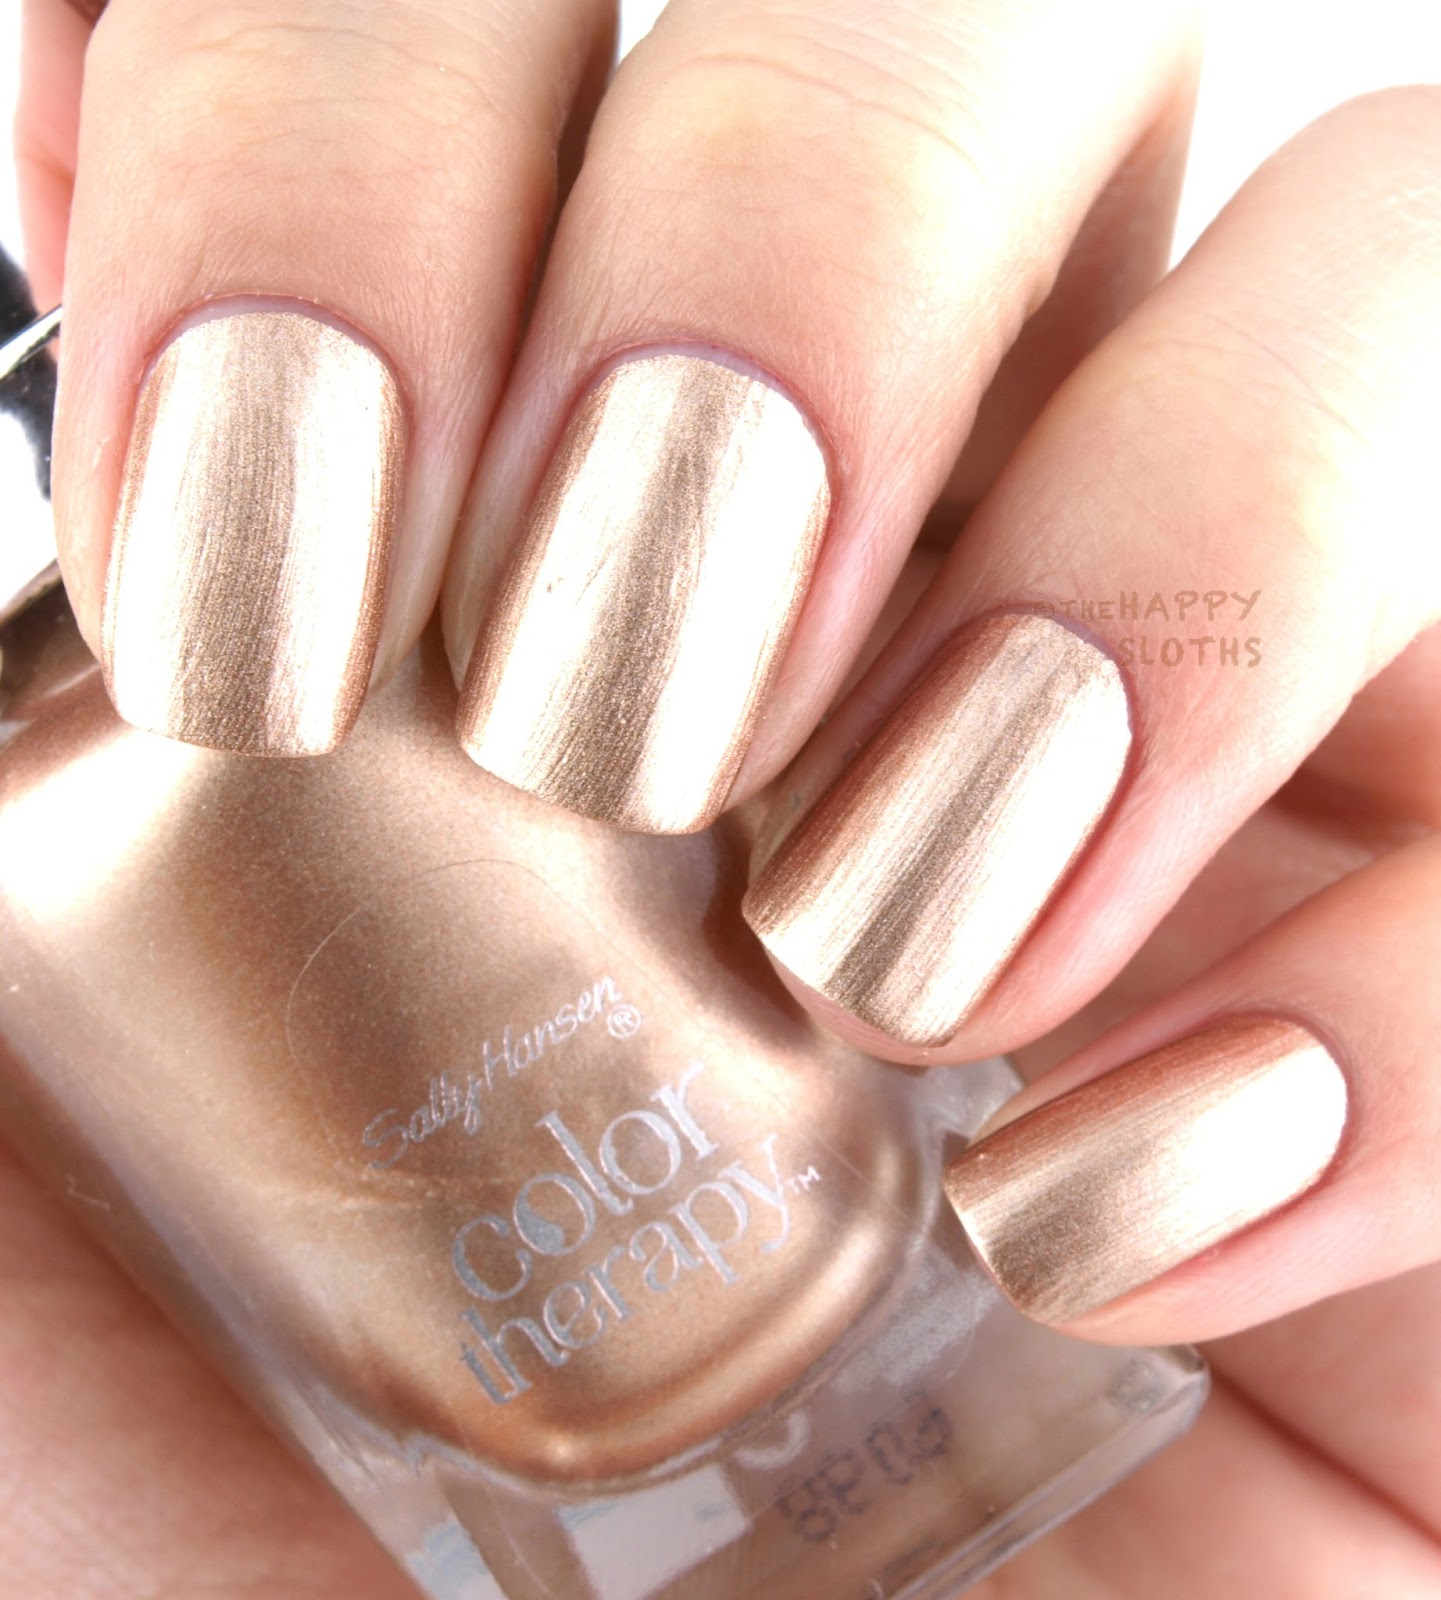 Sally Hansen Color Therapy Nail Polish: Review and Swatches | The ...